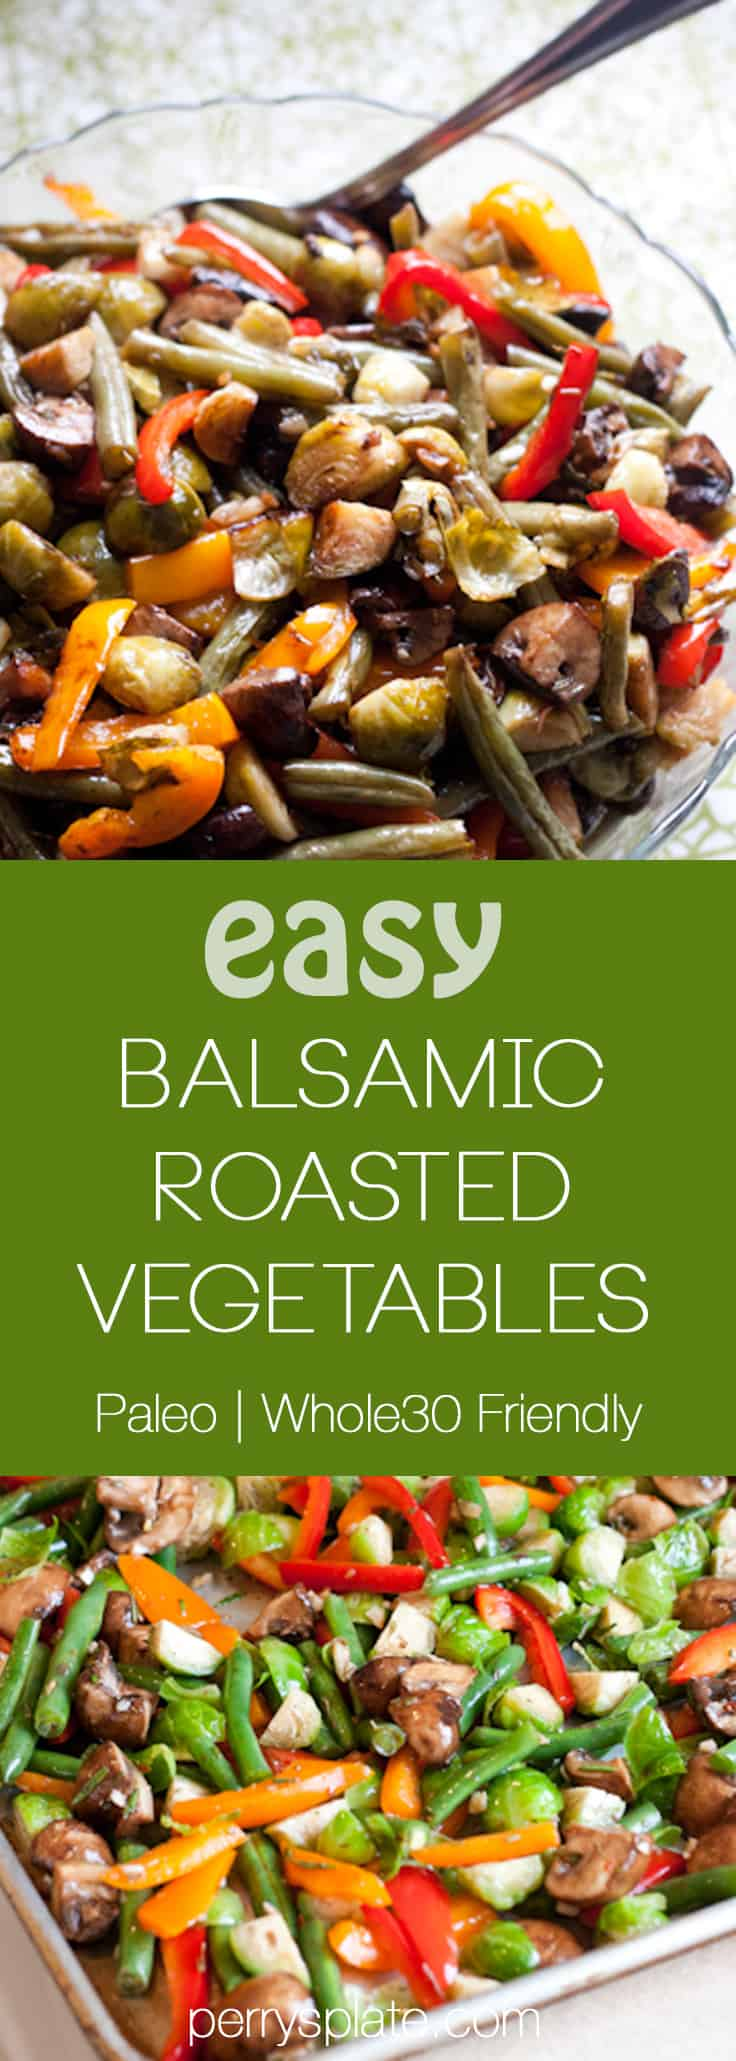 Easy Balsamic Roasted Vegetables | paleo recipes | gluten-free recipes | dairy-free recipes | Thanksgiving sides | perrysplate.com